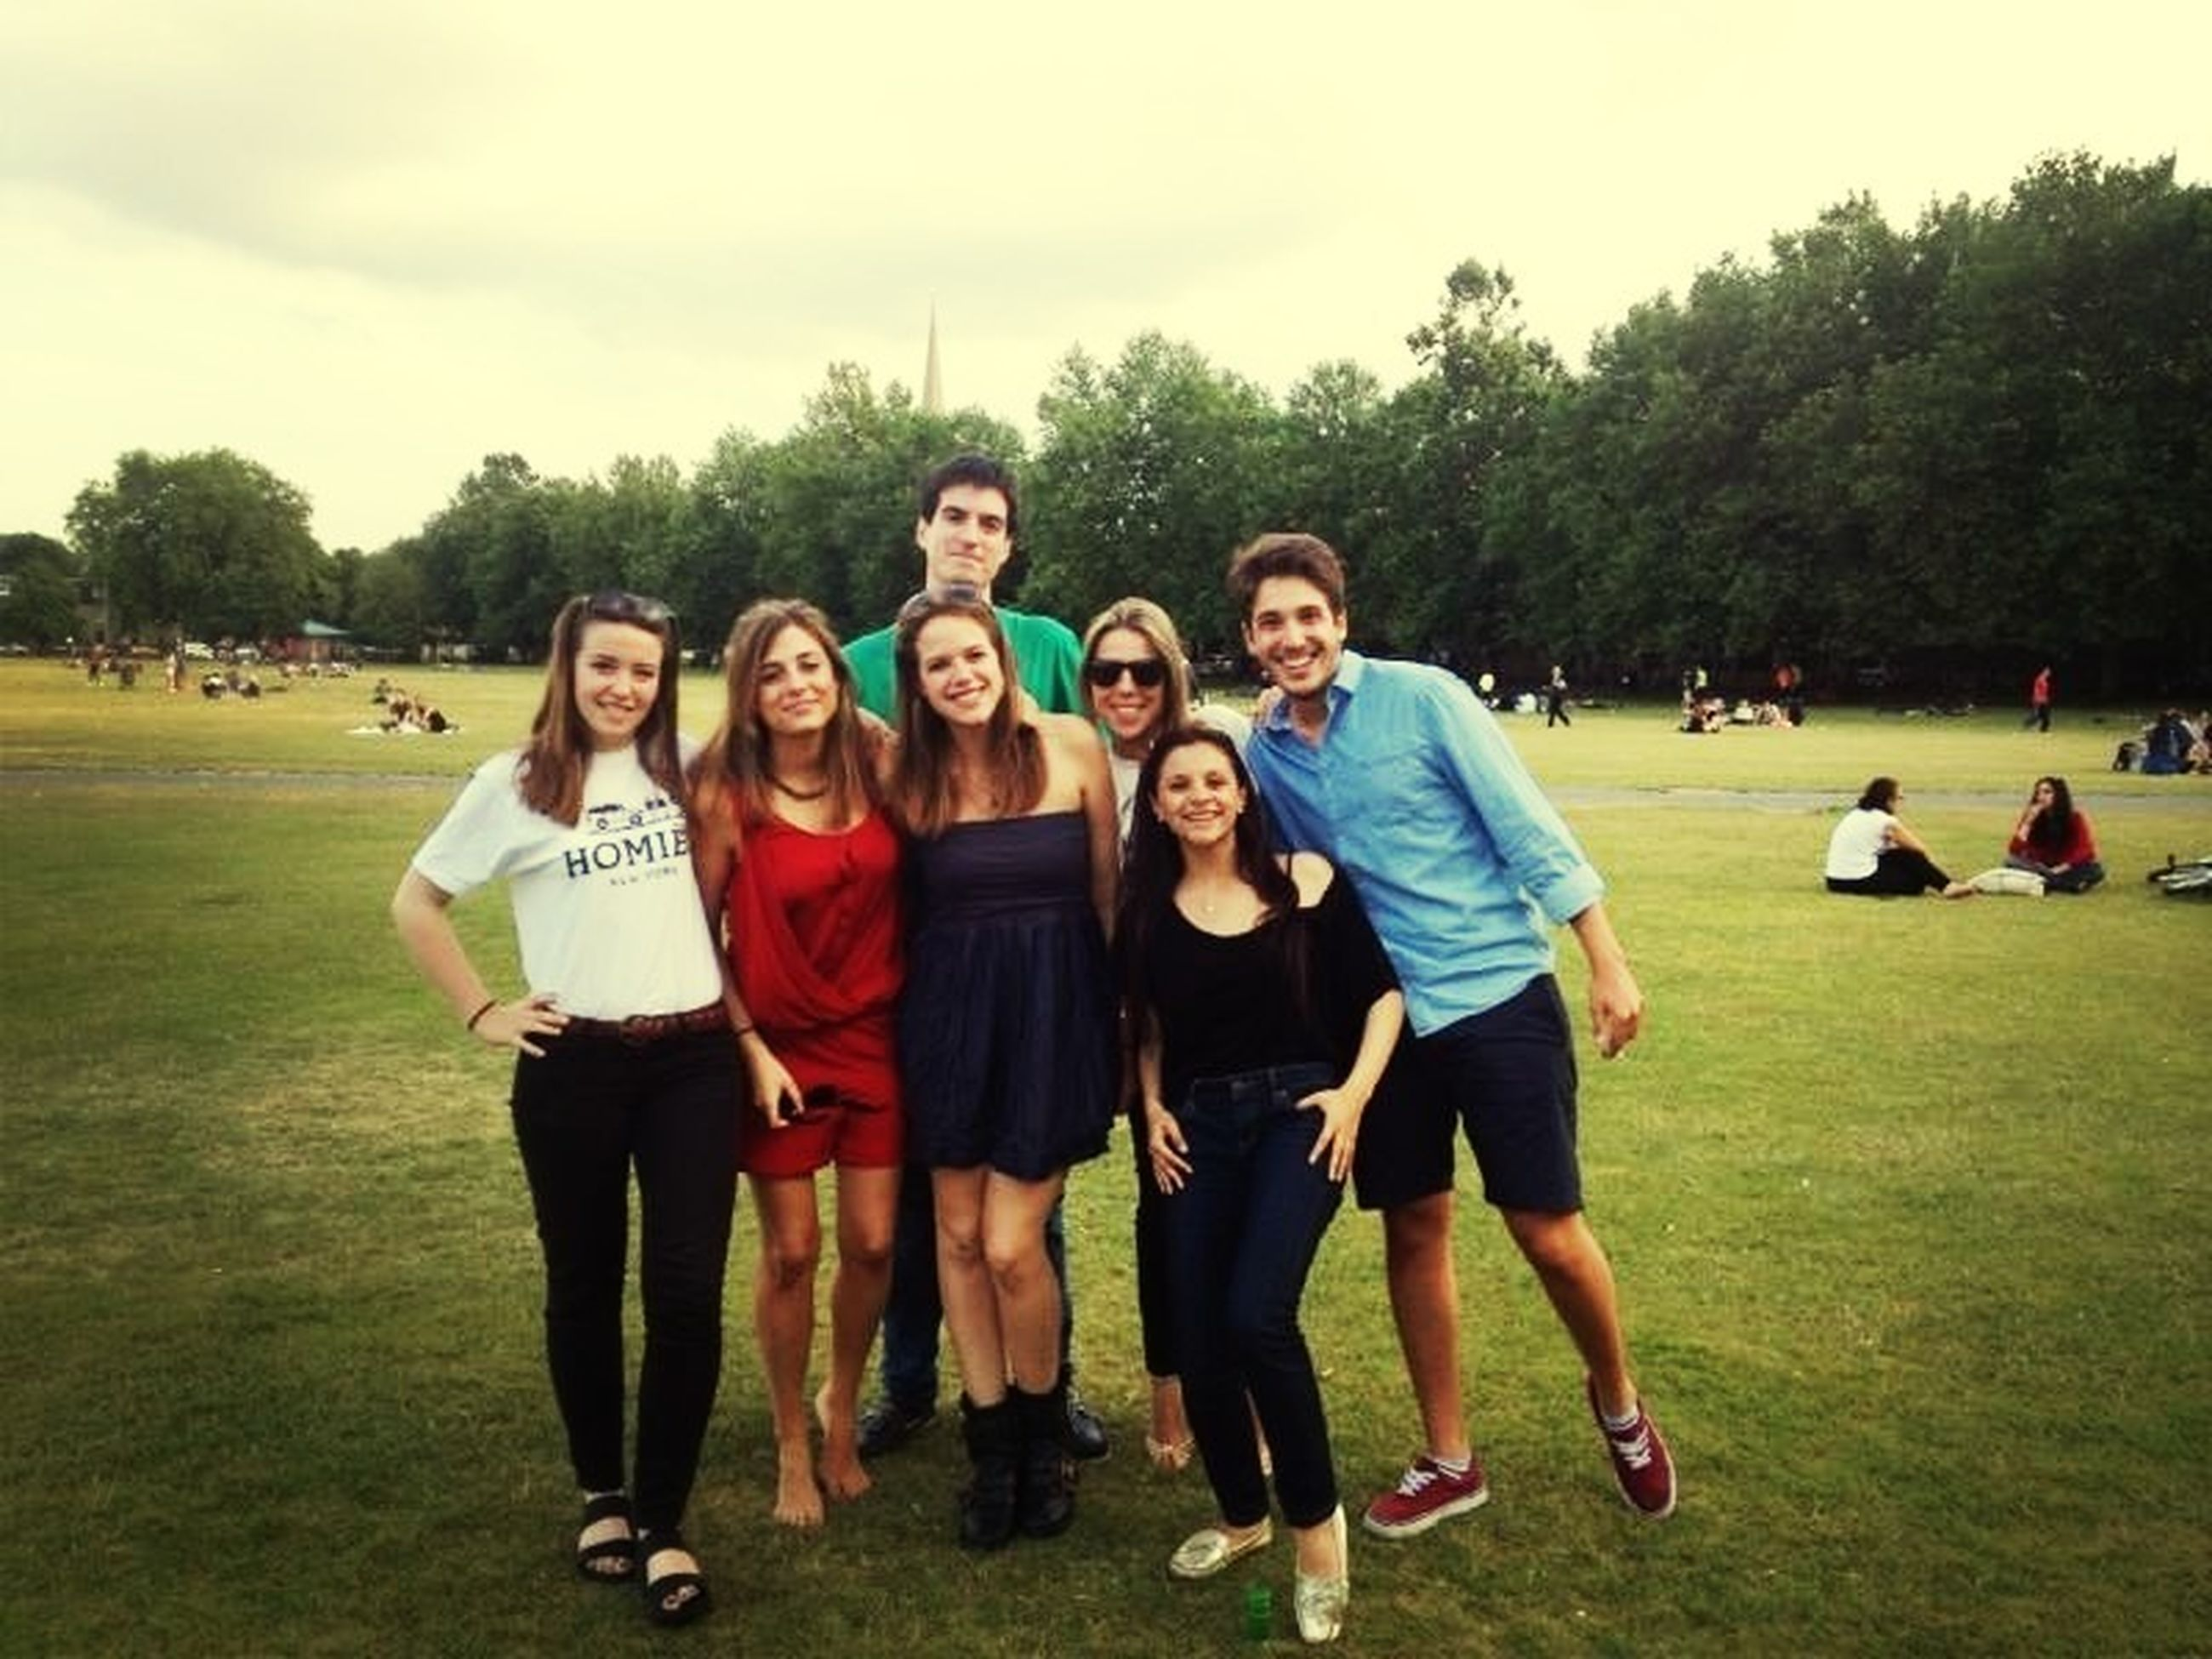 lifestyles, leisure activity, togetherness, grass, casual clothing, happiness, large group of people, enjoyment, friendship, fun, bonding, smiling, person, portrait, tree, looking at camera, men, green color, front view